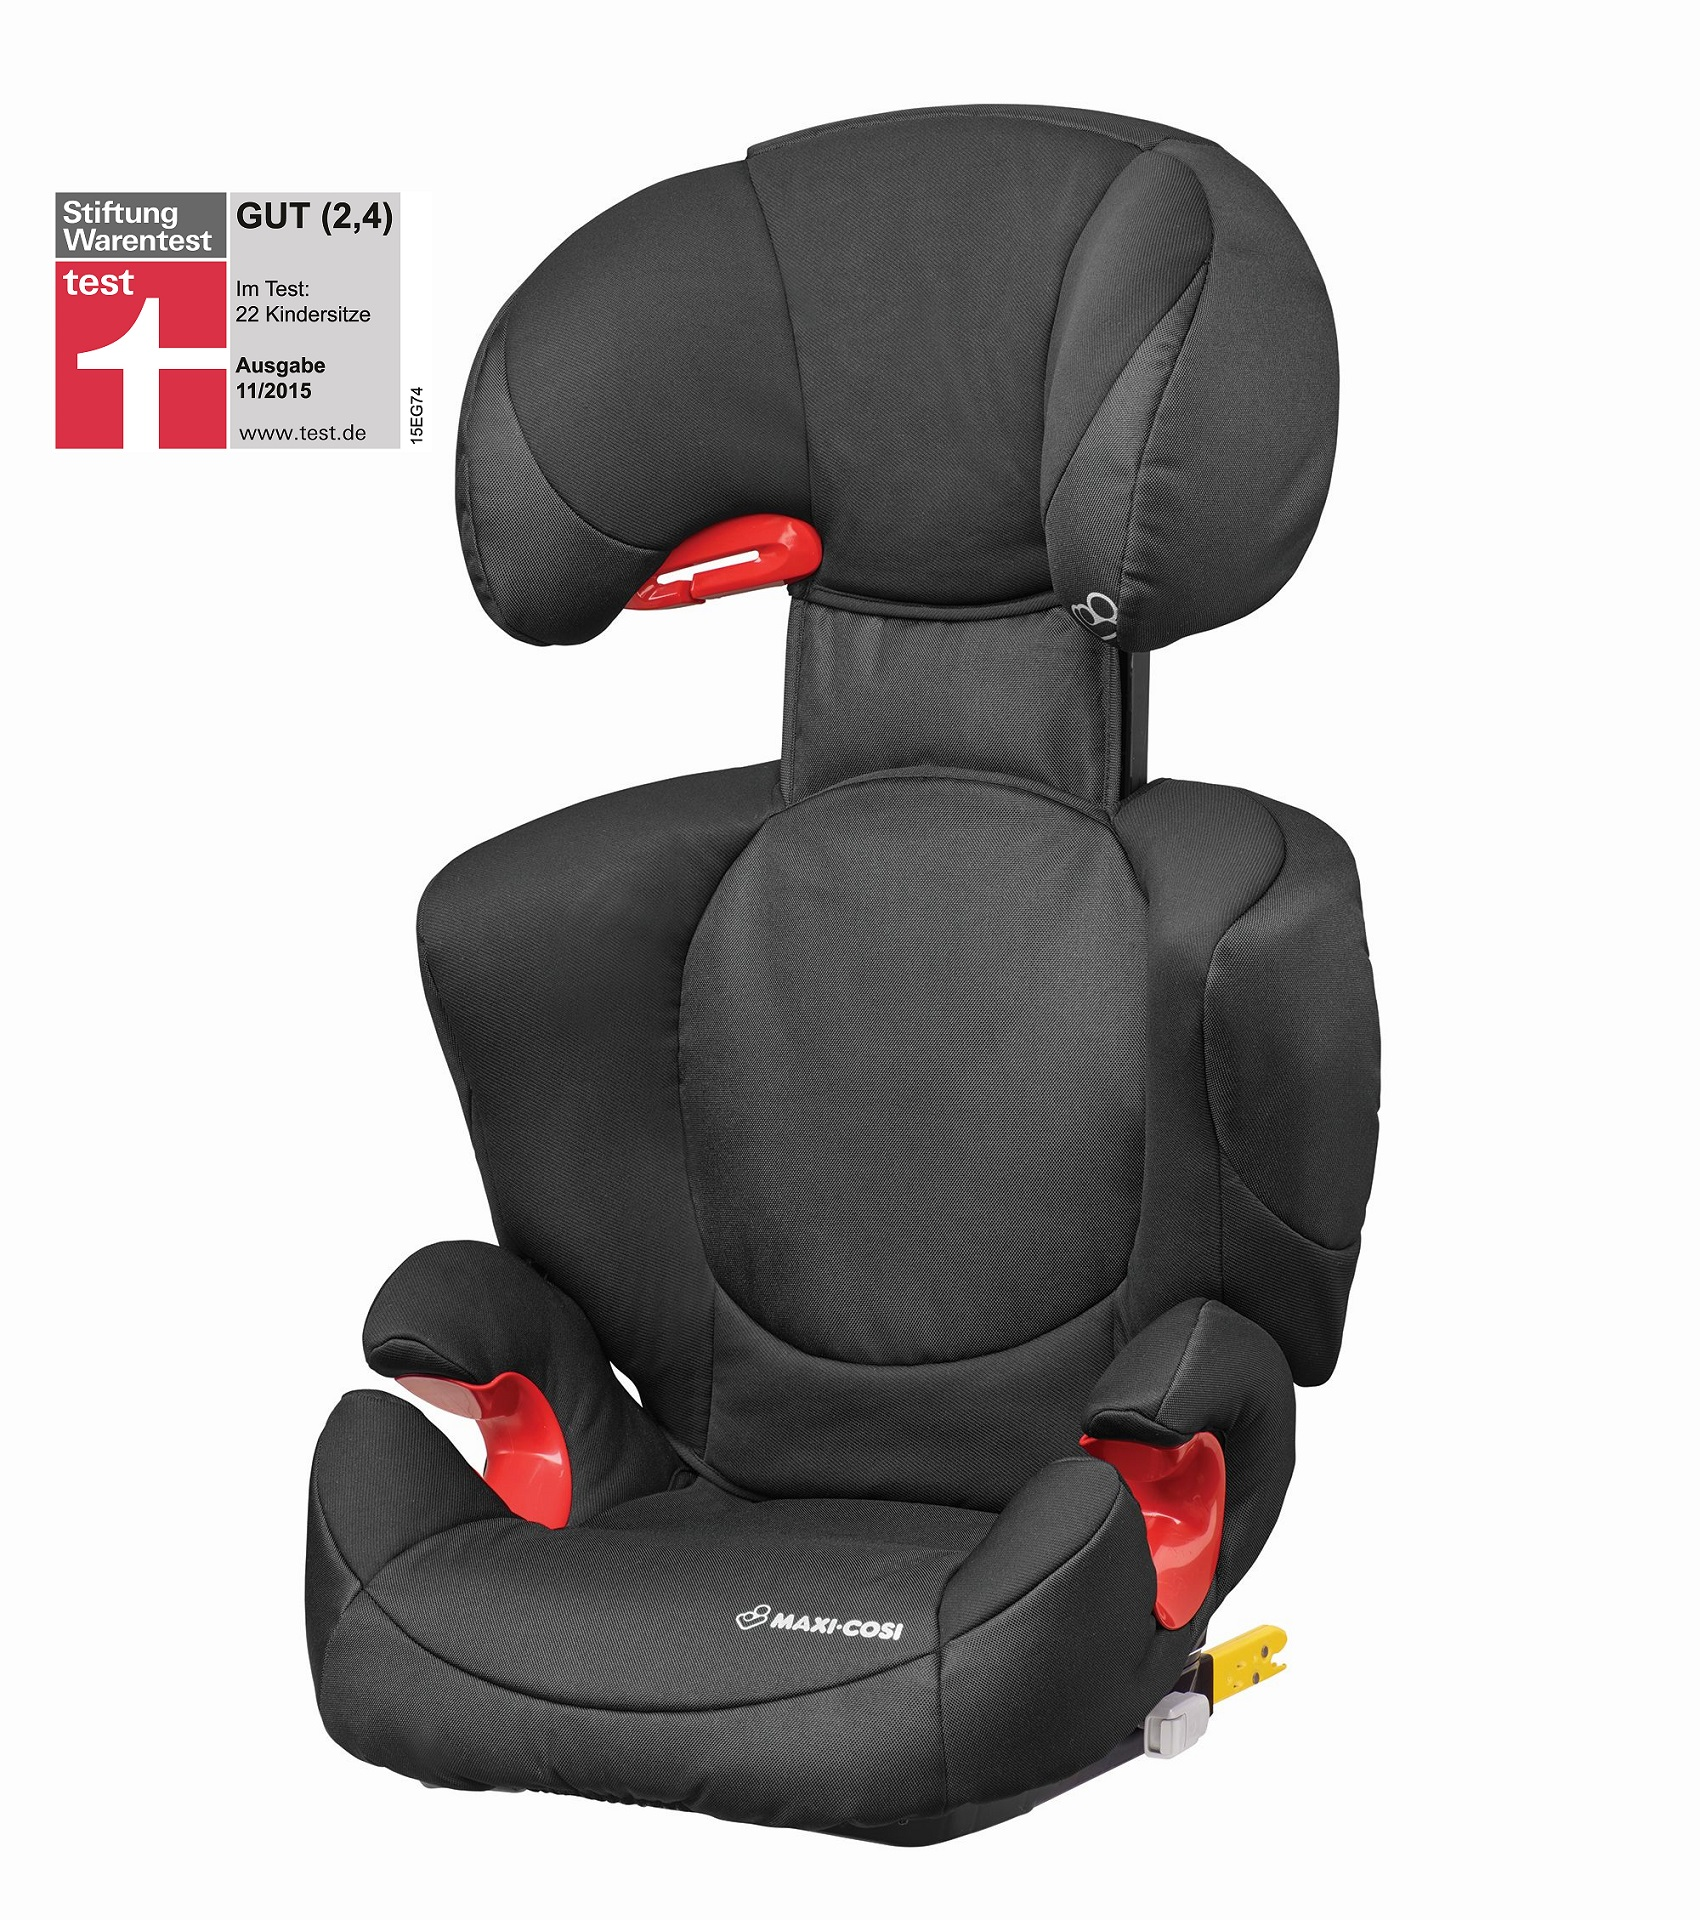 Maxi-Cosi Child Car Seat Rodi XP Fix - Buy at kidsroom | Car Seats